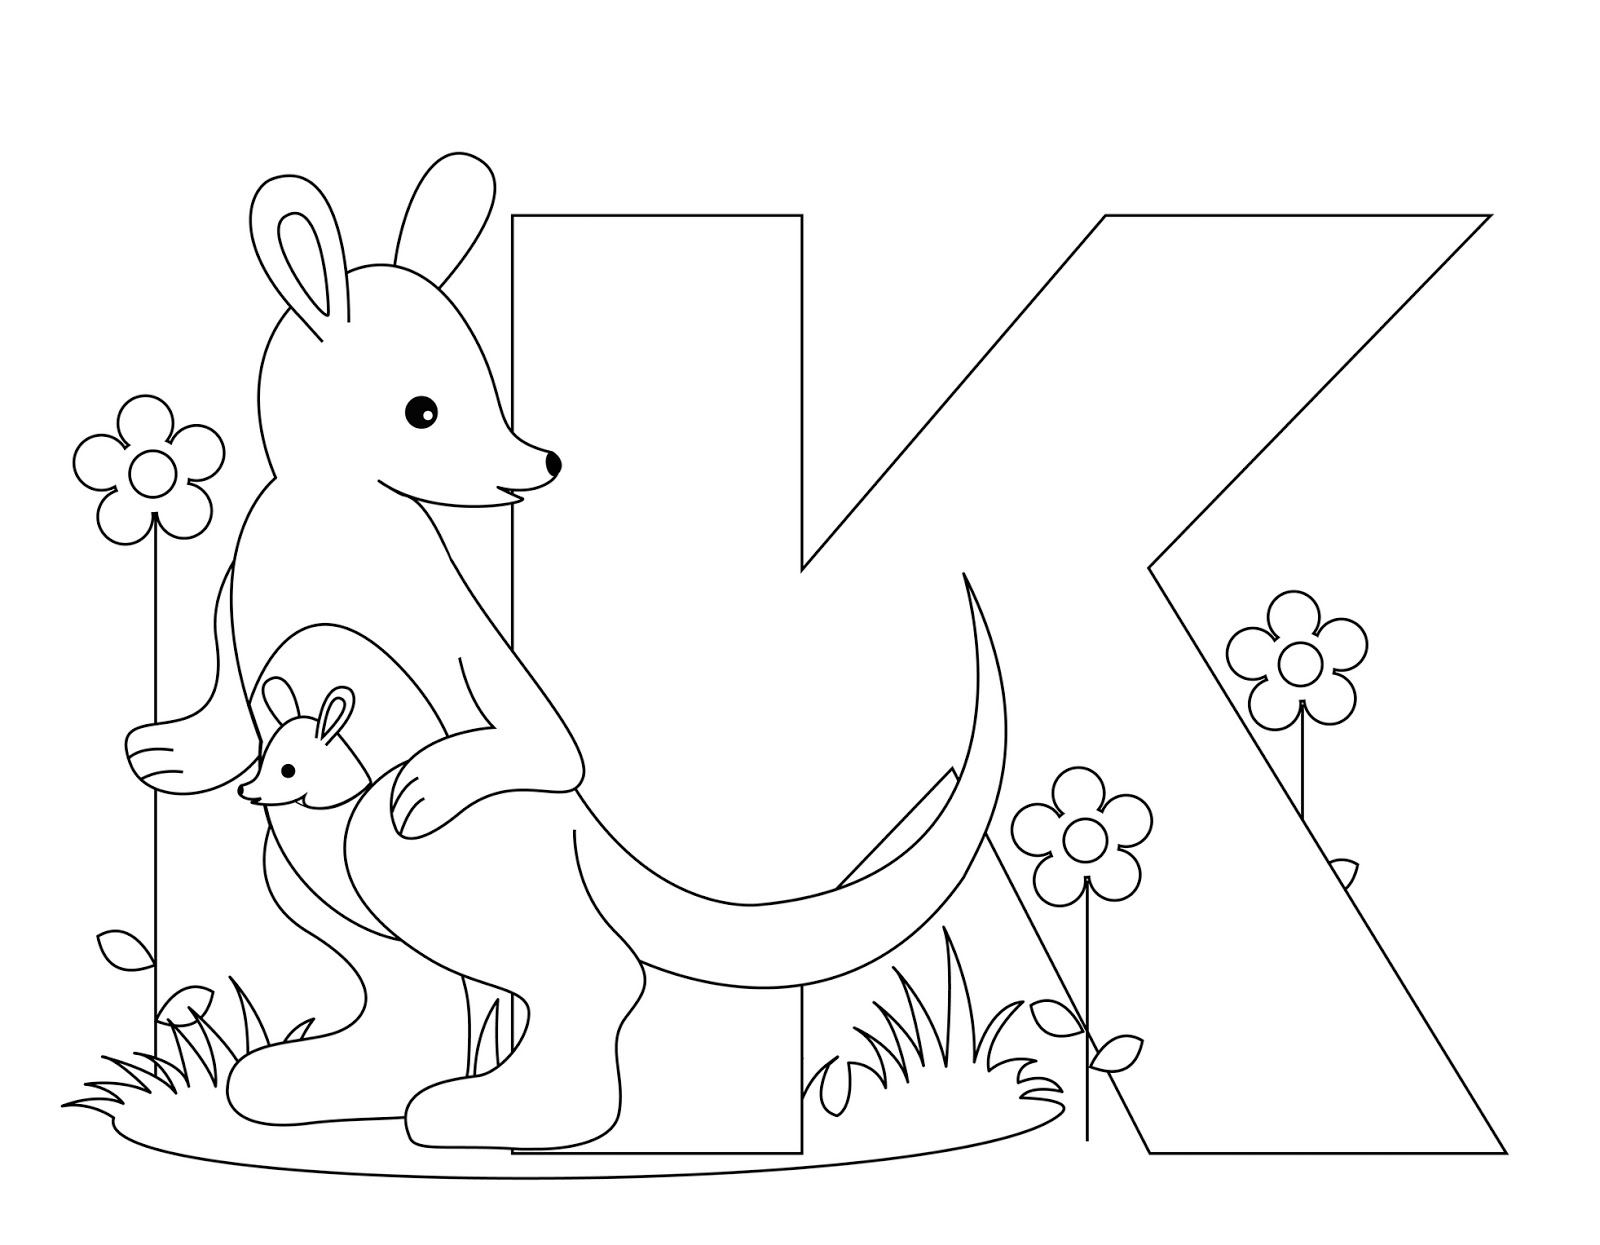 Animal Alphabet Coloring Pages Printable : Animal alphabet letter k coloring child